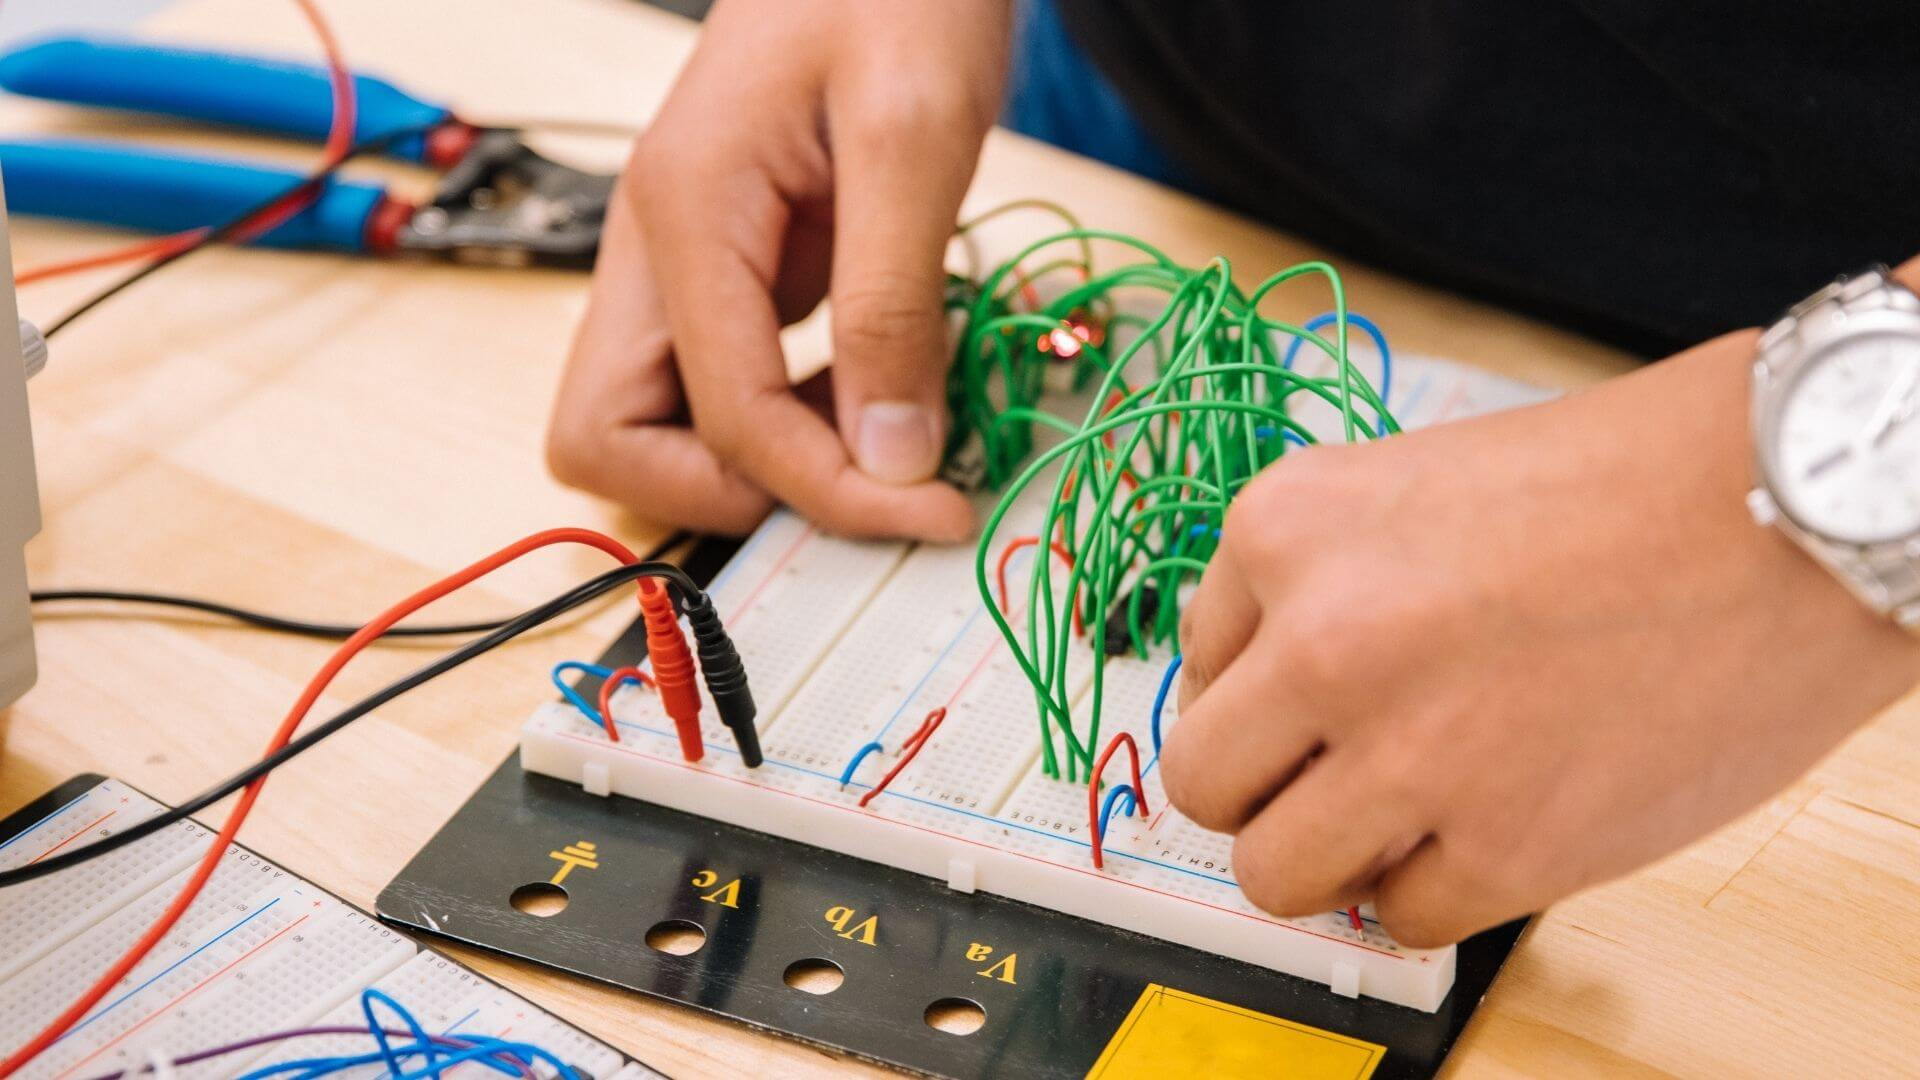 a teen working with wires on a computer